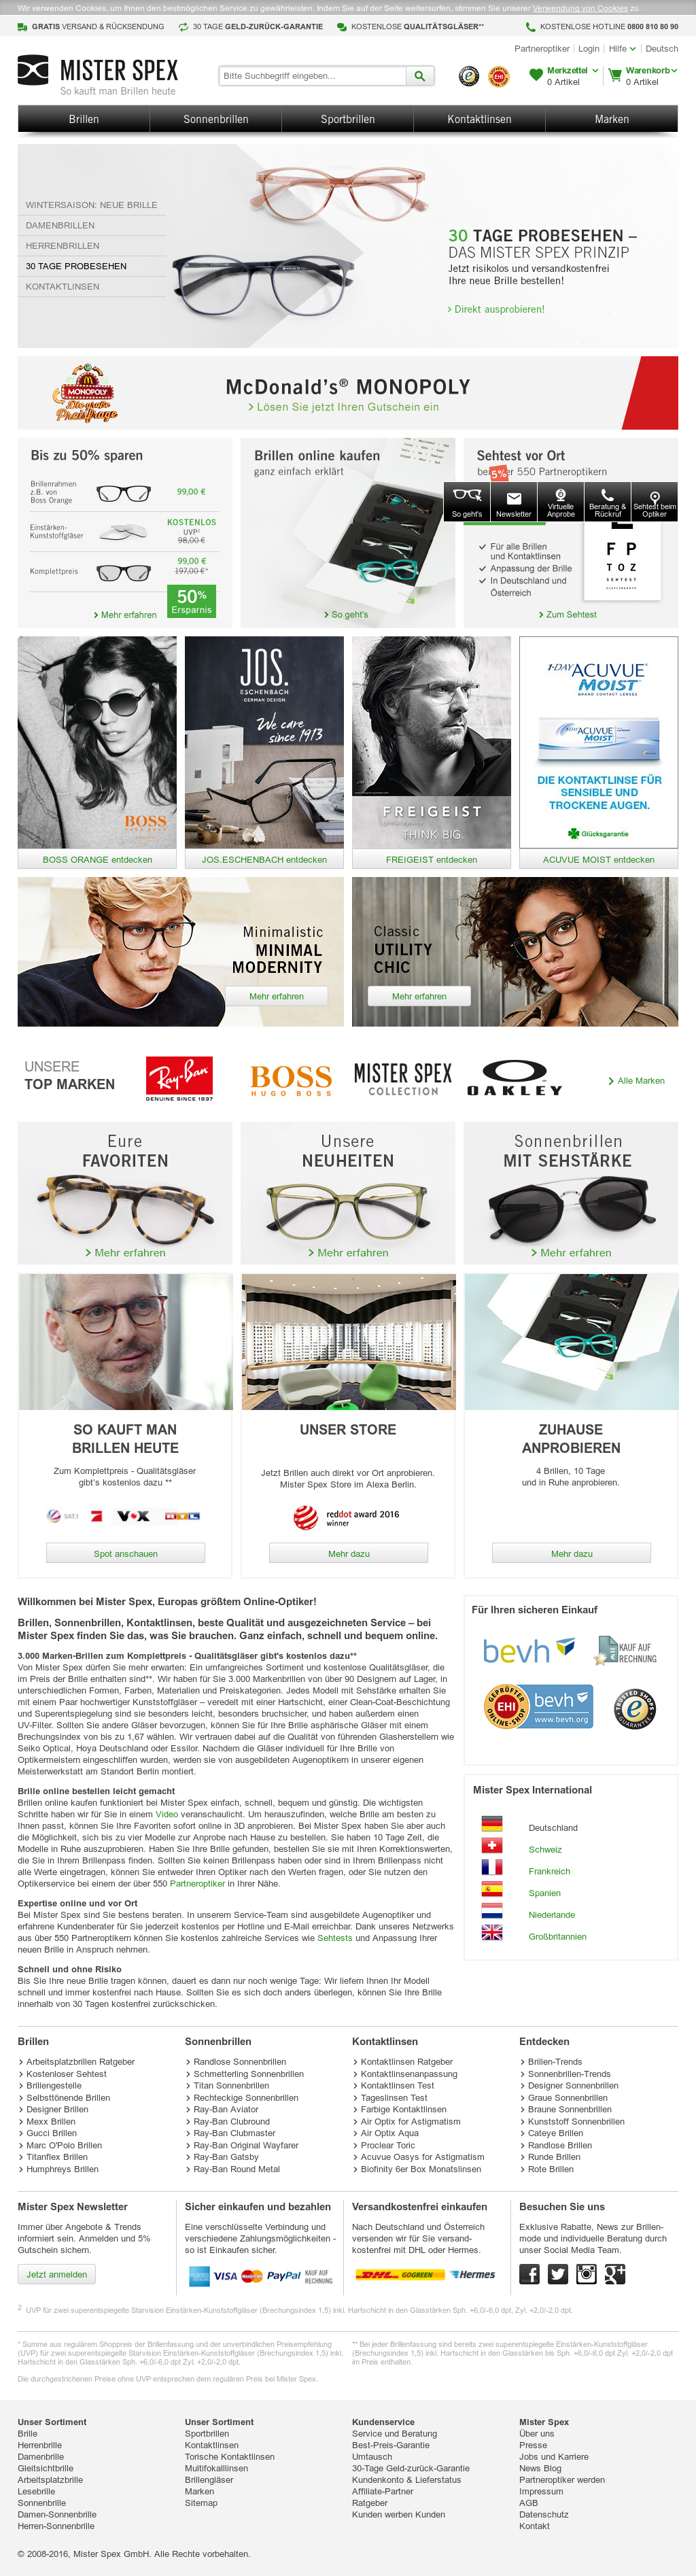 334ac5a81d0 Mister Spex Competitors, Revenue and Employees - Owler Company Profile